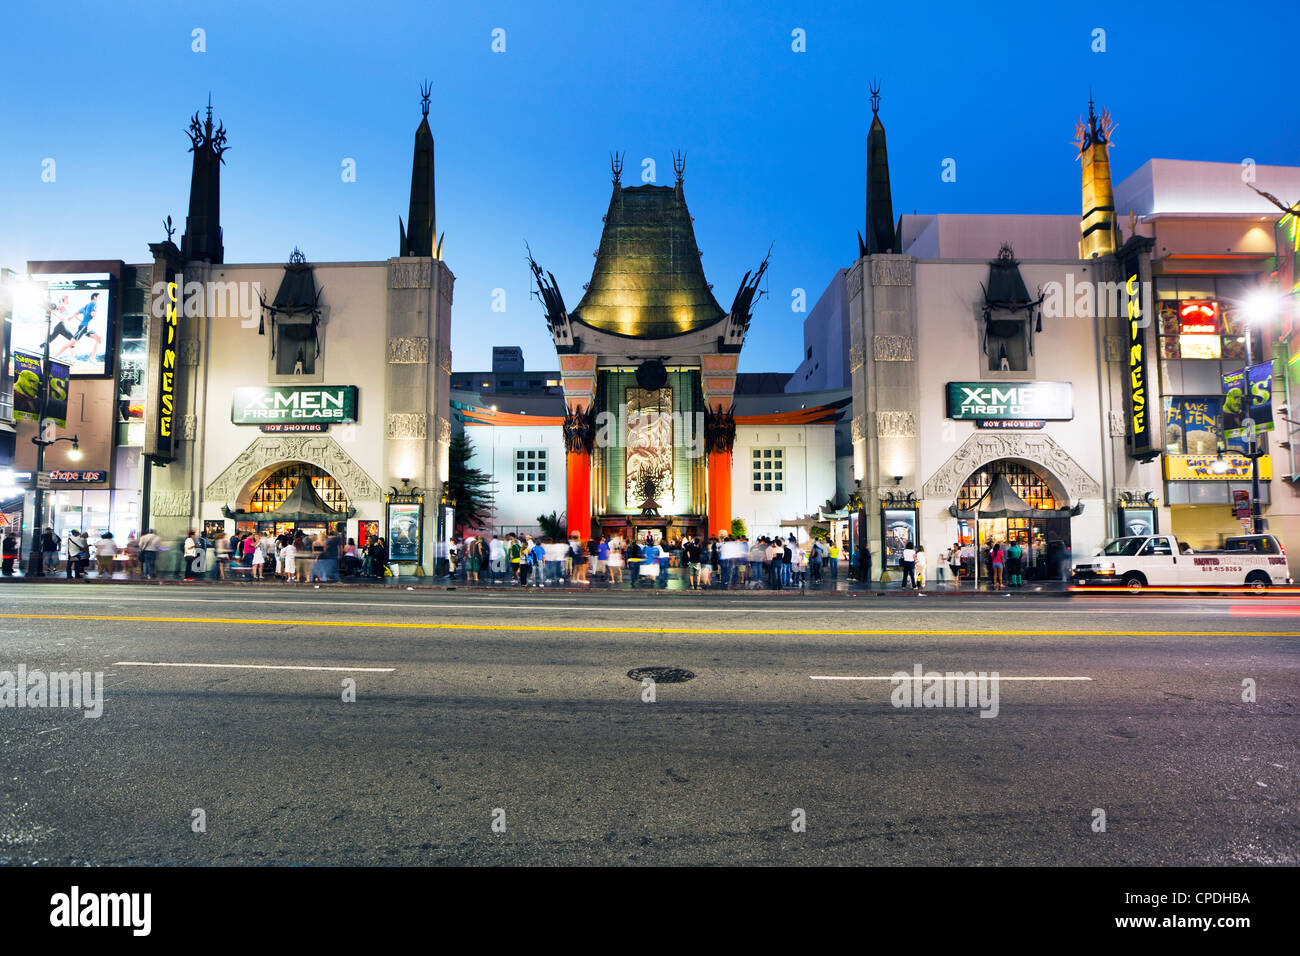 Grauman's Chinese Theatre, Hollywood Boulevard, Los Angeles, California, United States of America, North America - Stock Image